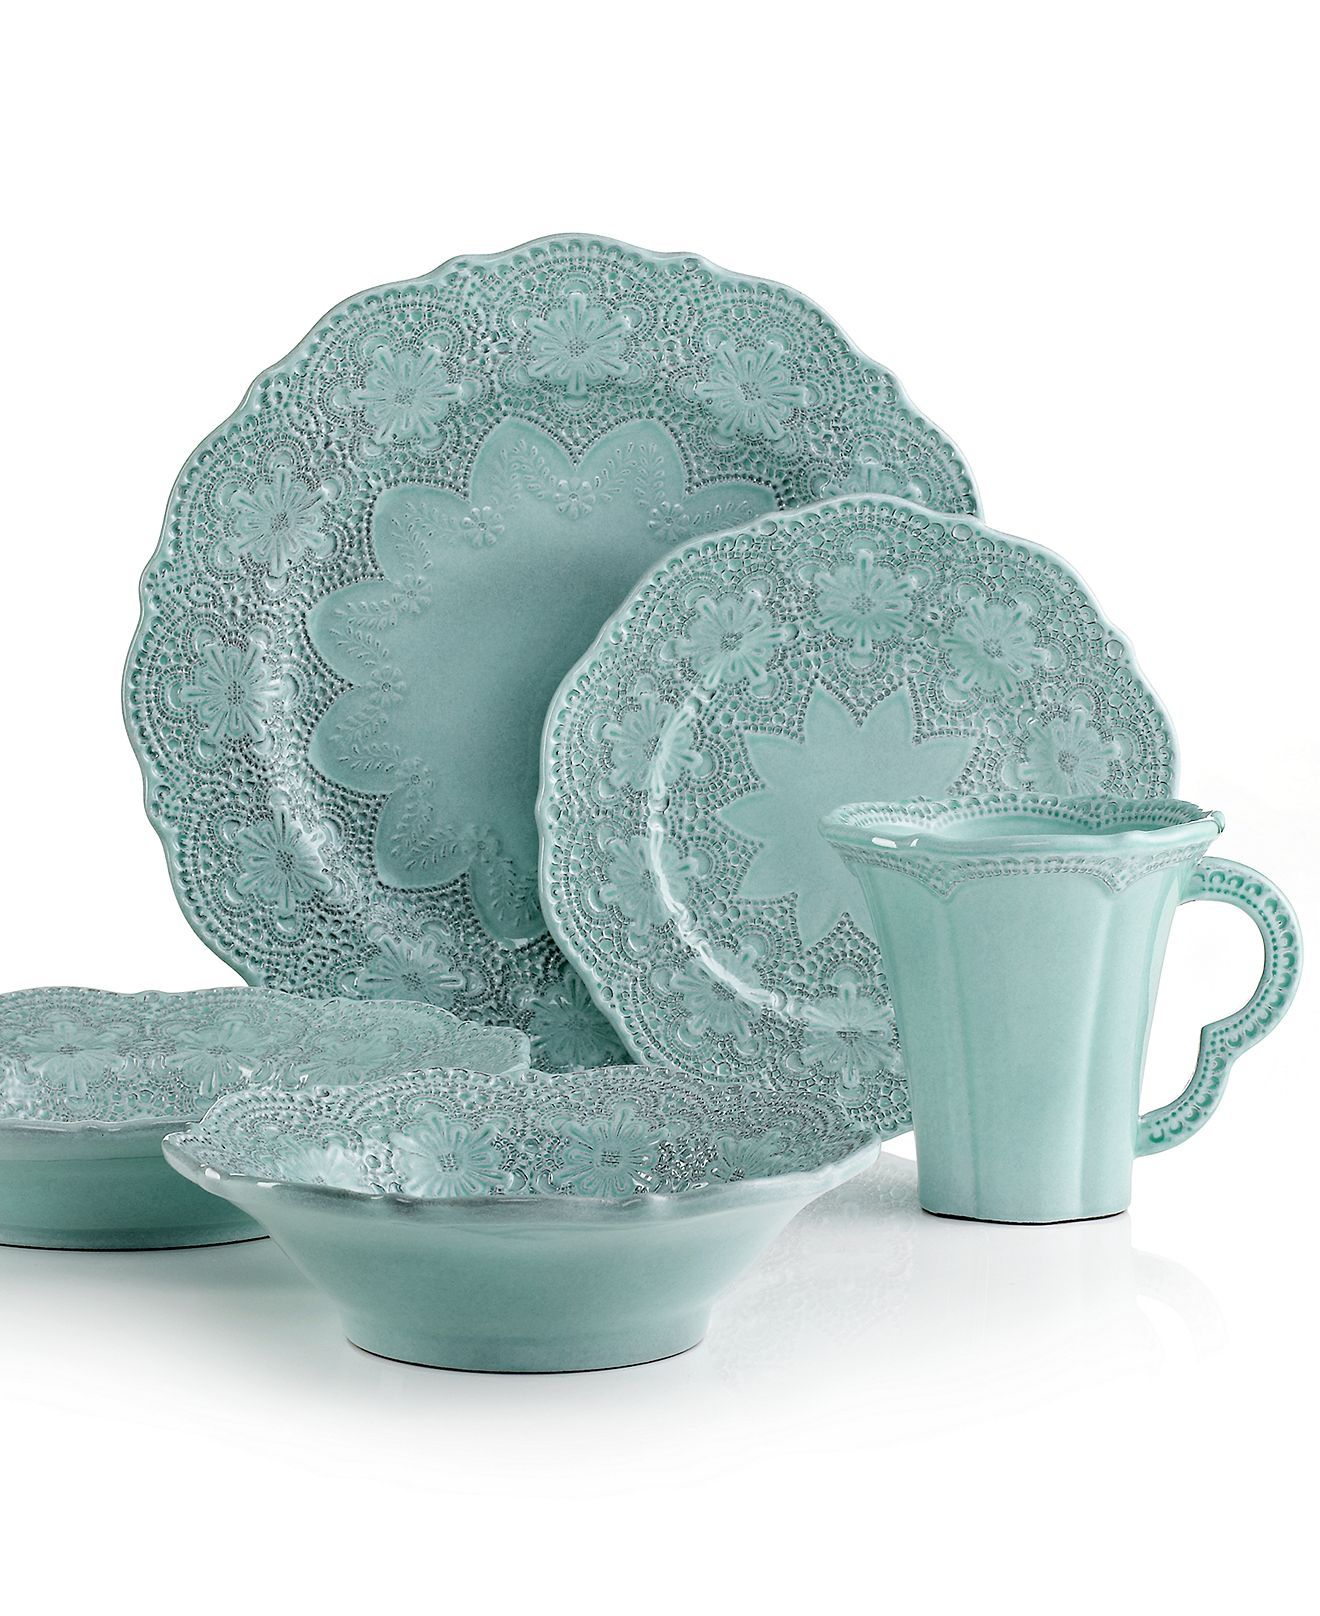 Handcrafted in the Italian tradition Merletto dinnerware from Arte Italica is intricately embellished with a lacy floral texture and painted a serene aqua ...  sc 1 st  Pinterest & Handcrafted in the Italian tradition Merletto dinnerware from Arte ...